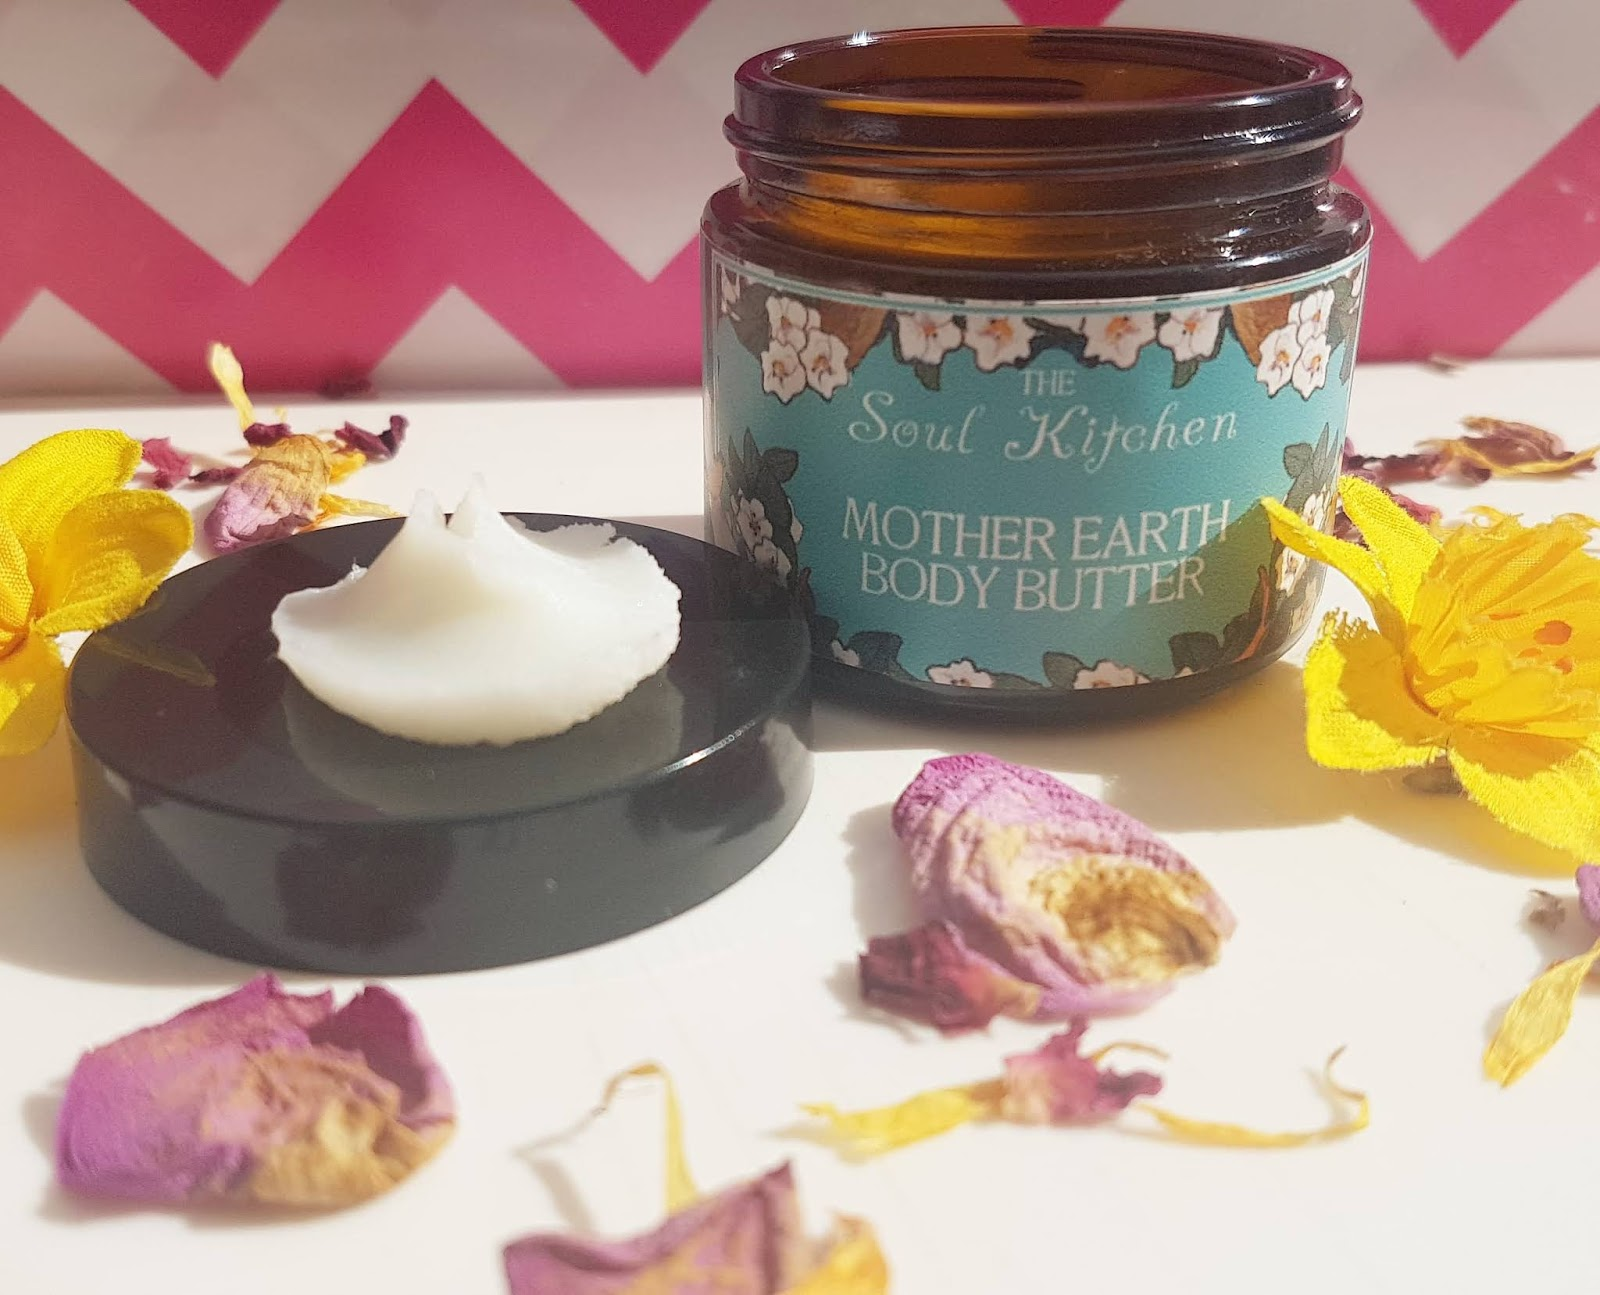 The Soul Kitchen Mother Earth Body Butter